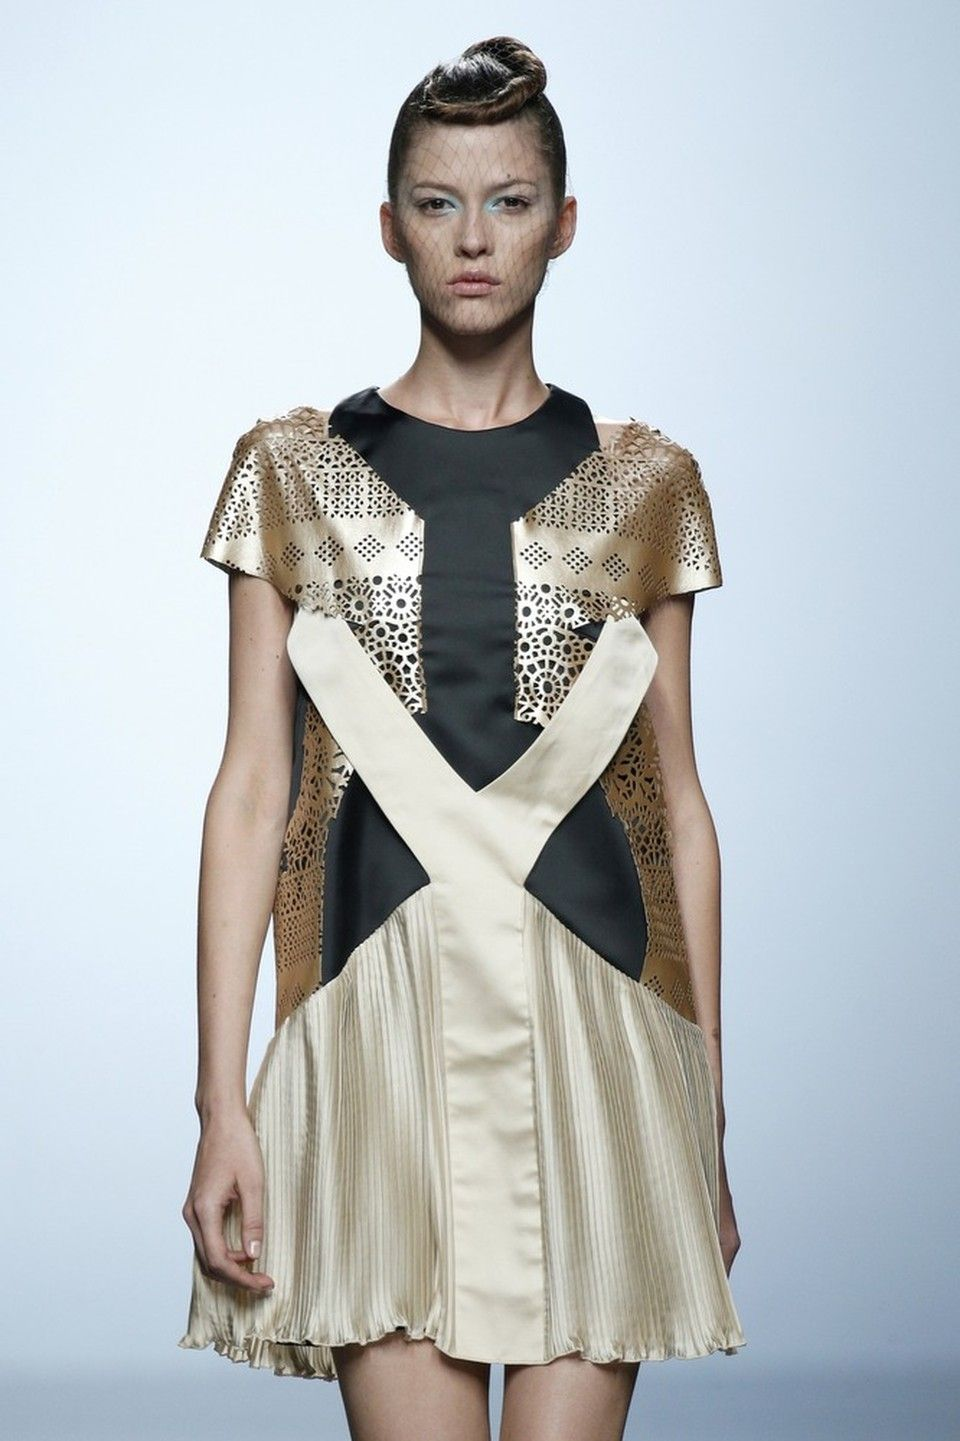 Tima by LEYRE VALIENTE  #dress #gold #betosee #fashion